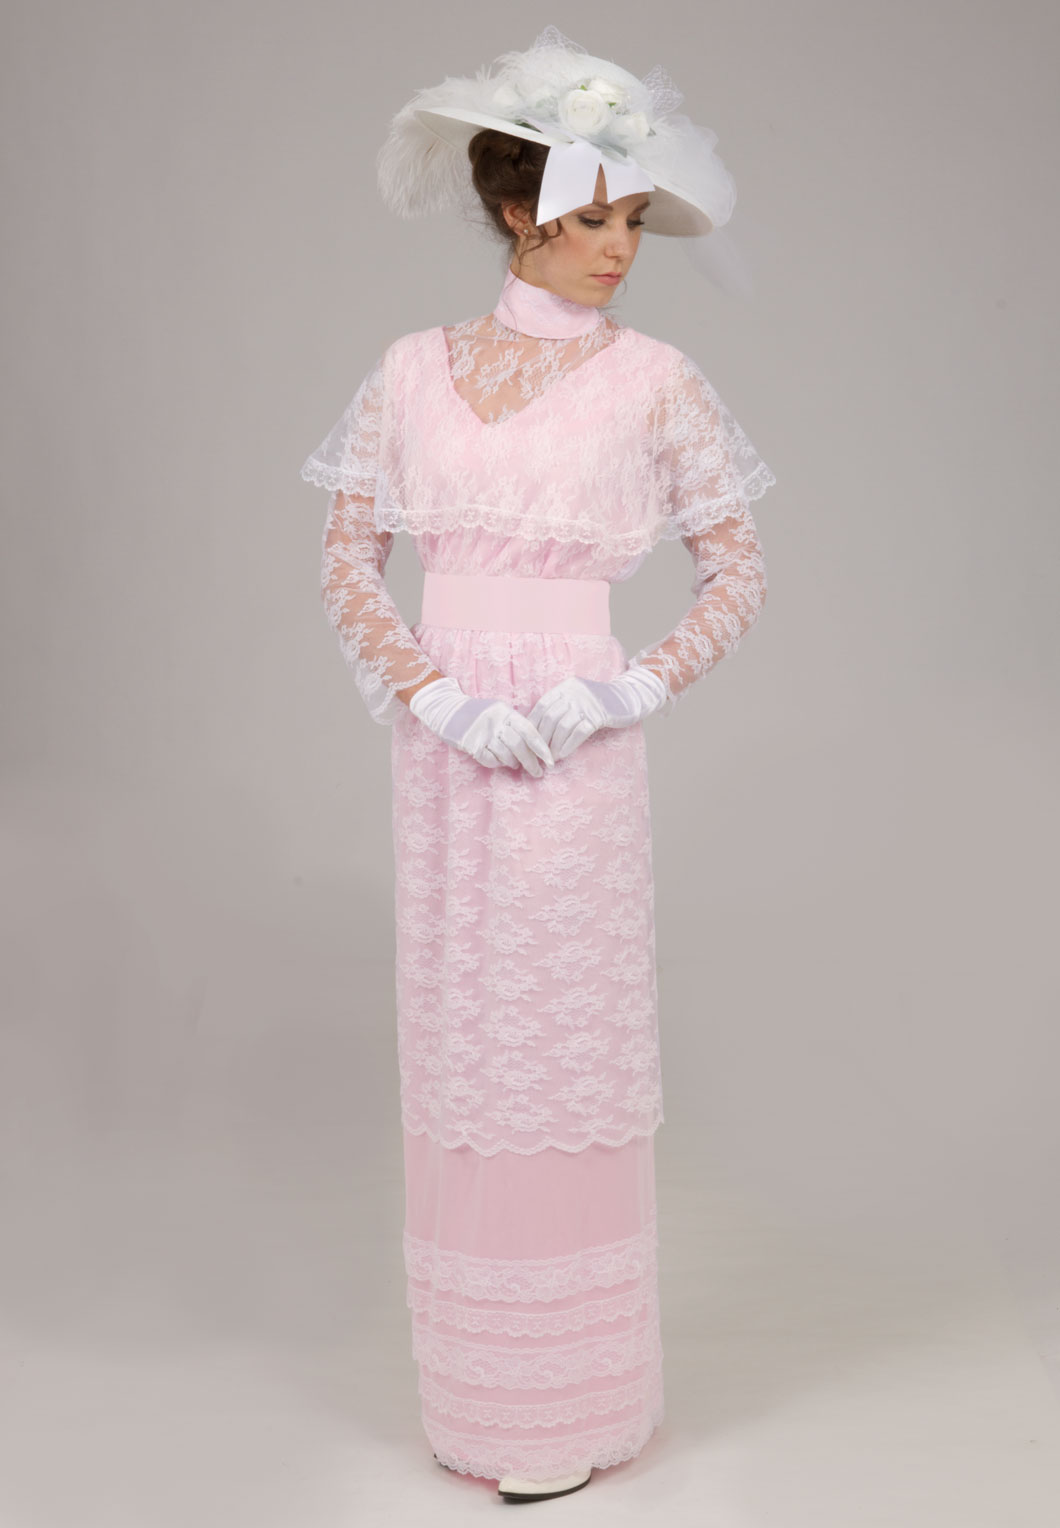 Lace Edwardian Dress Recollections